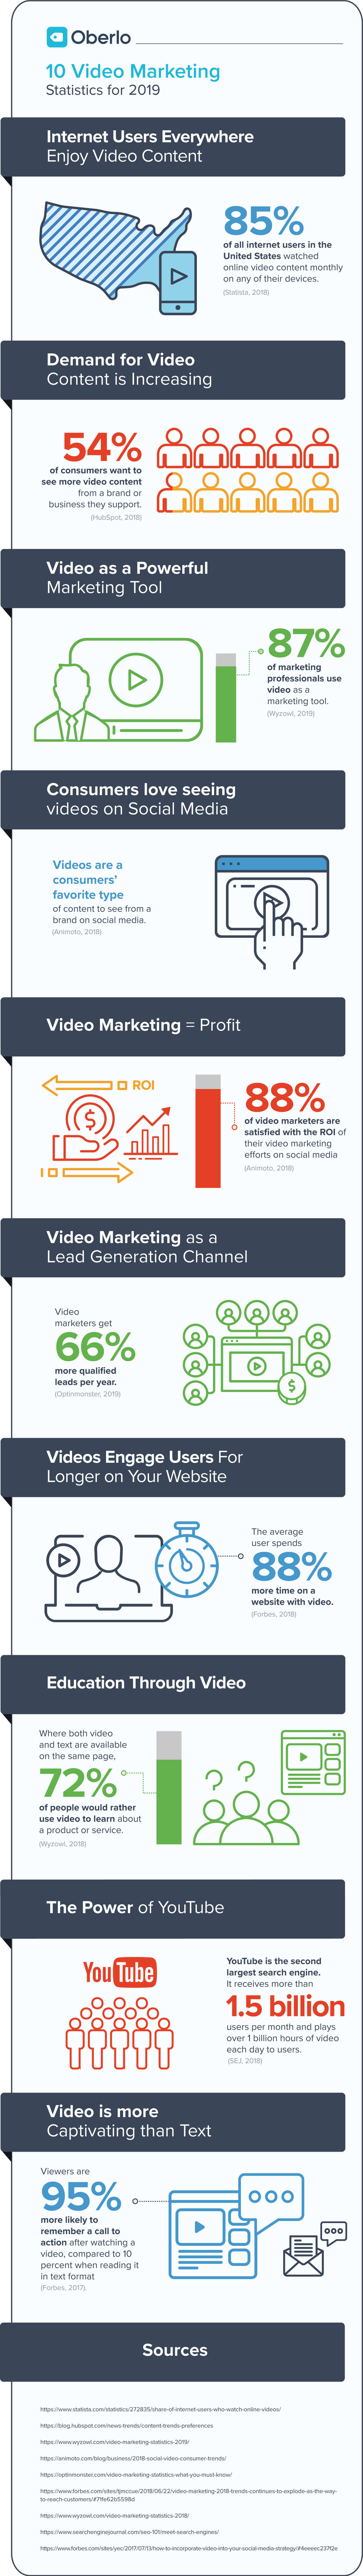 Why video-marketing-infographic.jpg